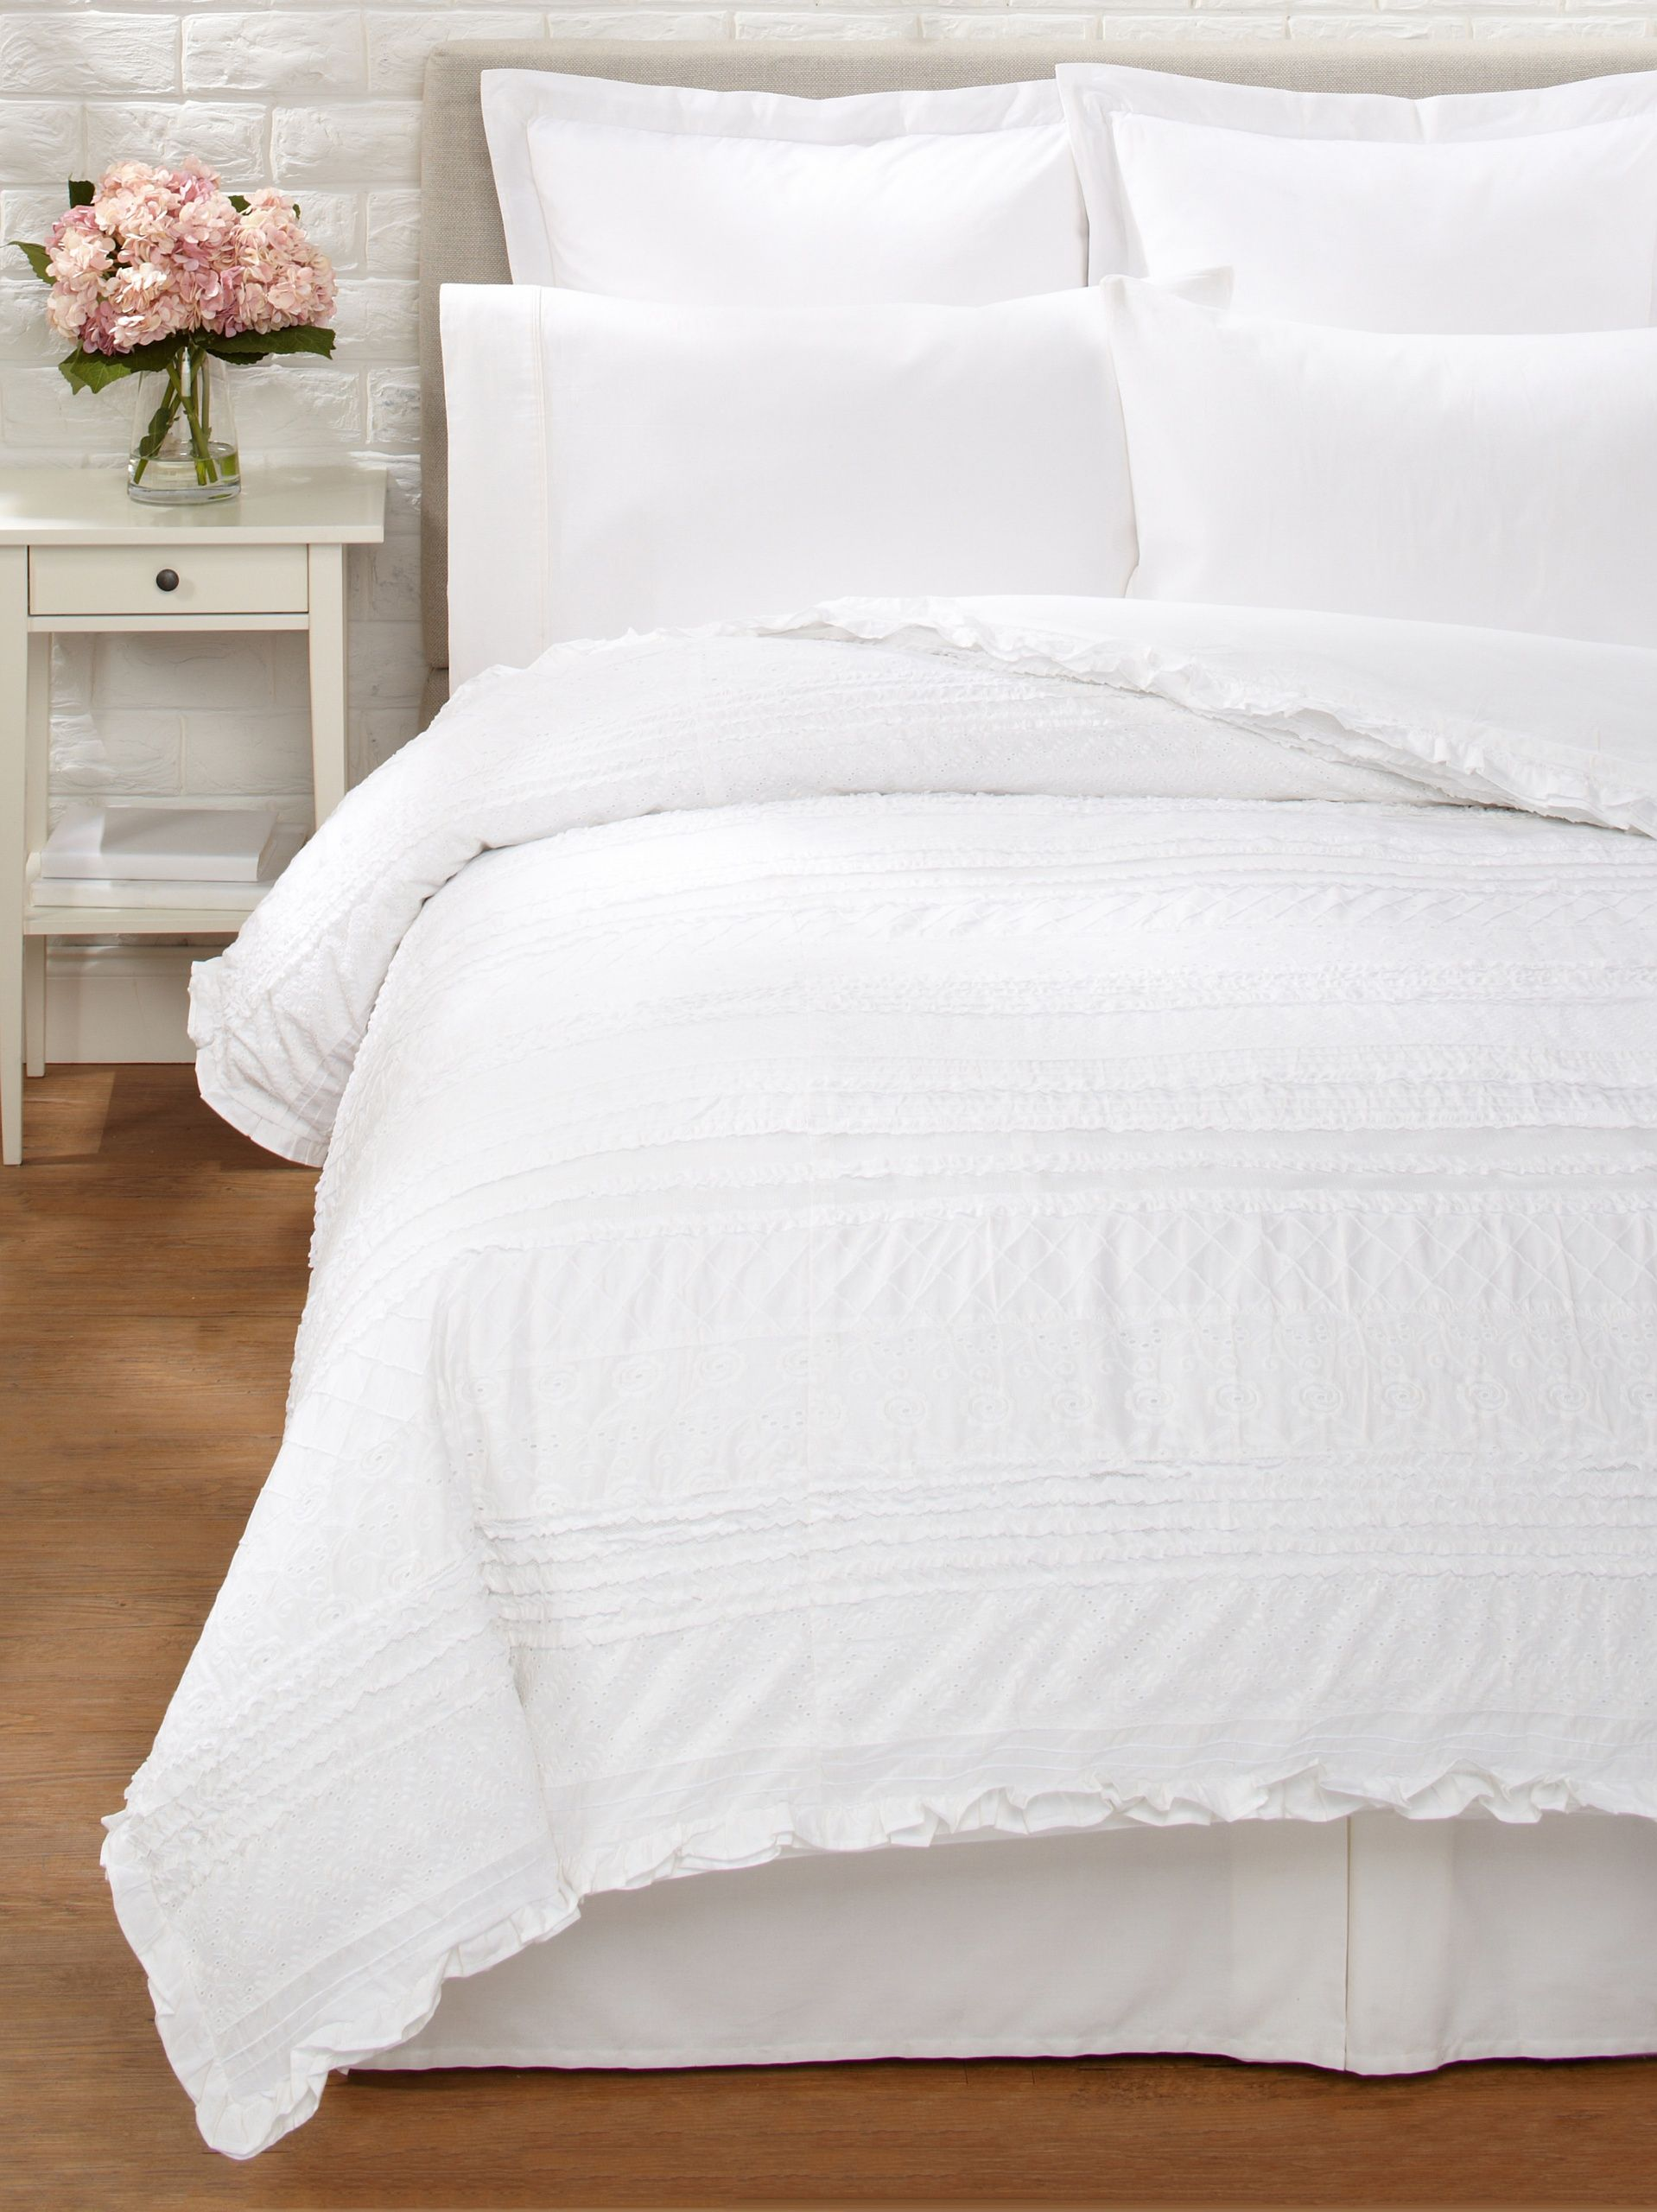 else queen we duvet is material up own quilt cookieloves make from anything zipper pin comforter full dimensions doona king twin a smartgirlstyle covers work dye your how to with duvets ruched size dip ombre of diy or simple us what fabric sheets out loves cookie design cover big